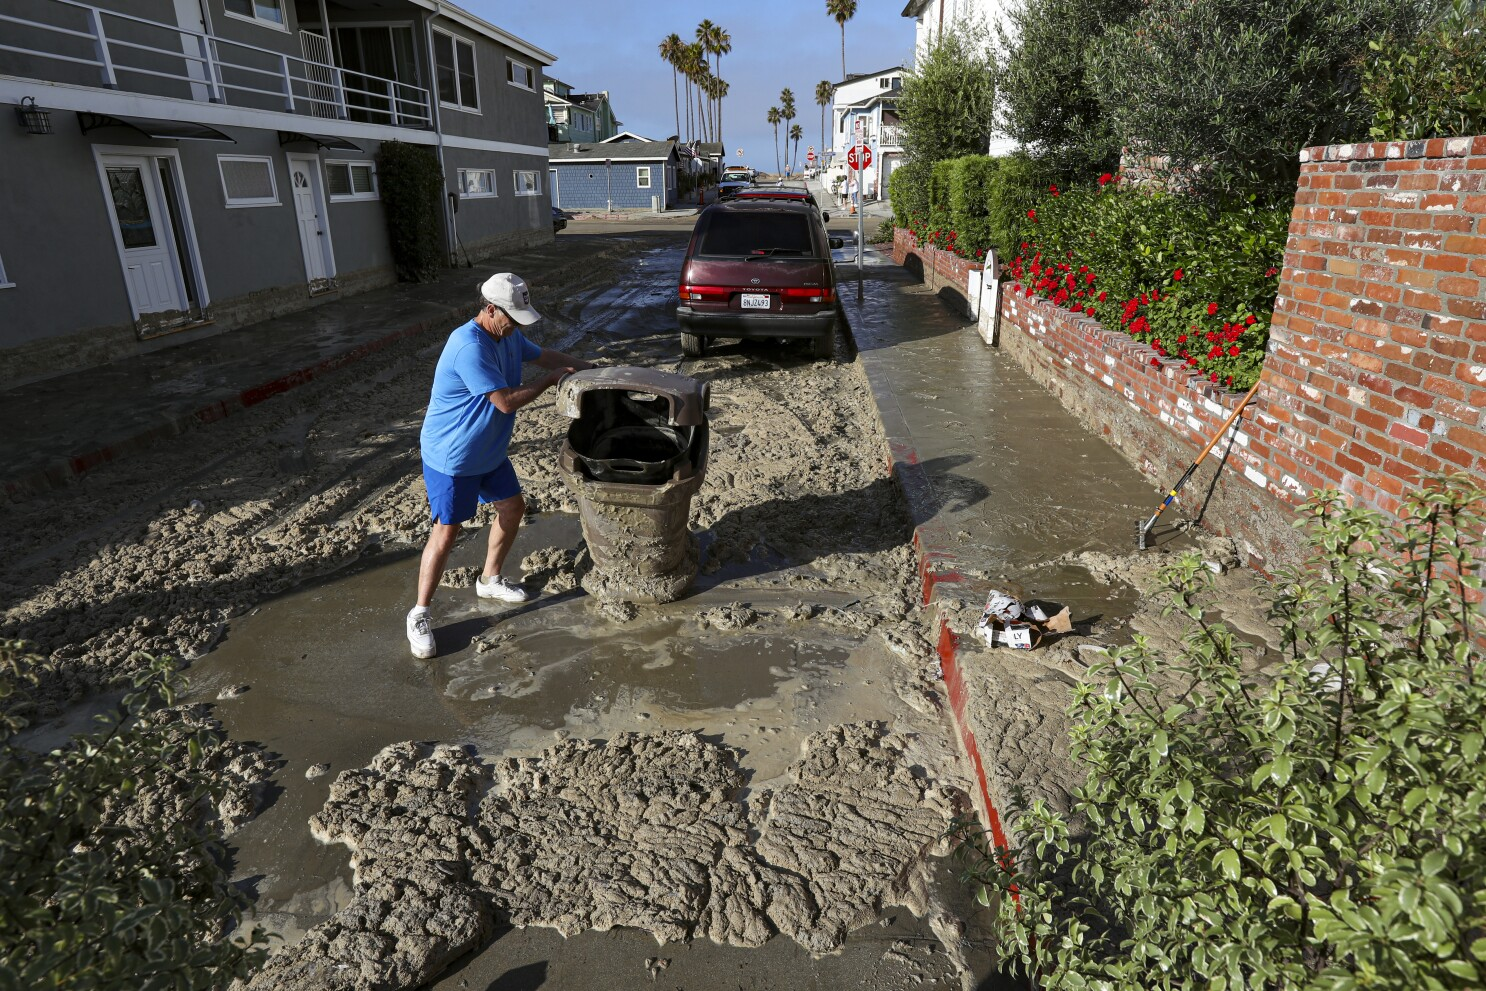 'Something bad's going to happen': Big surf and high tide hit Balboa Peninsula with flooding